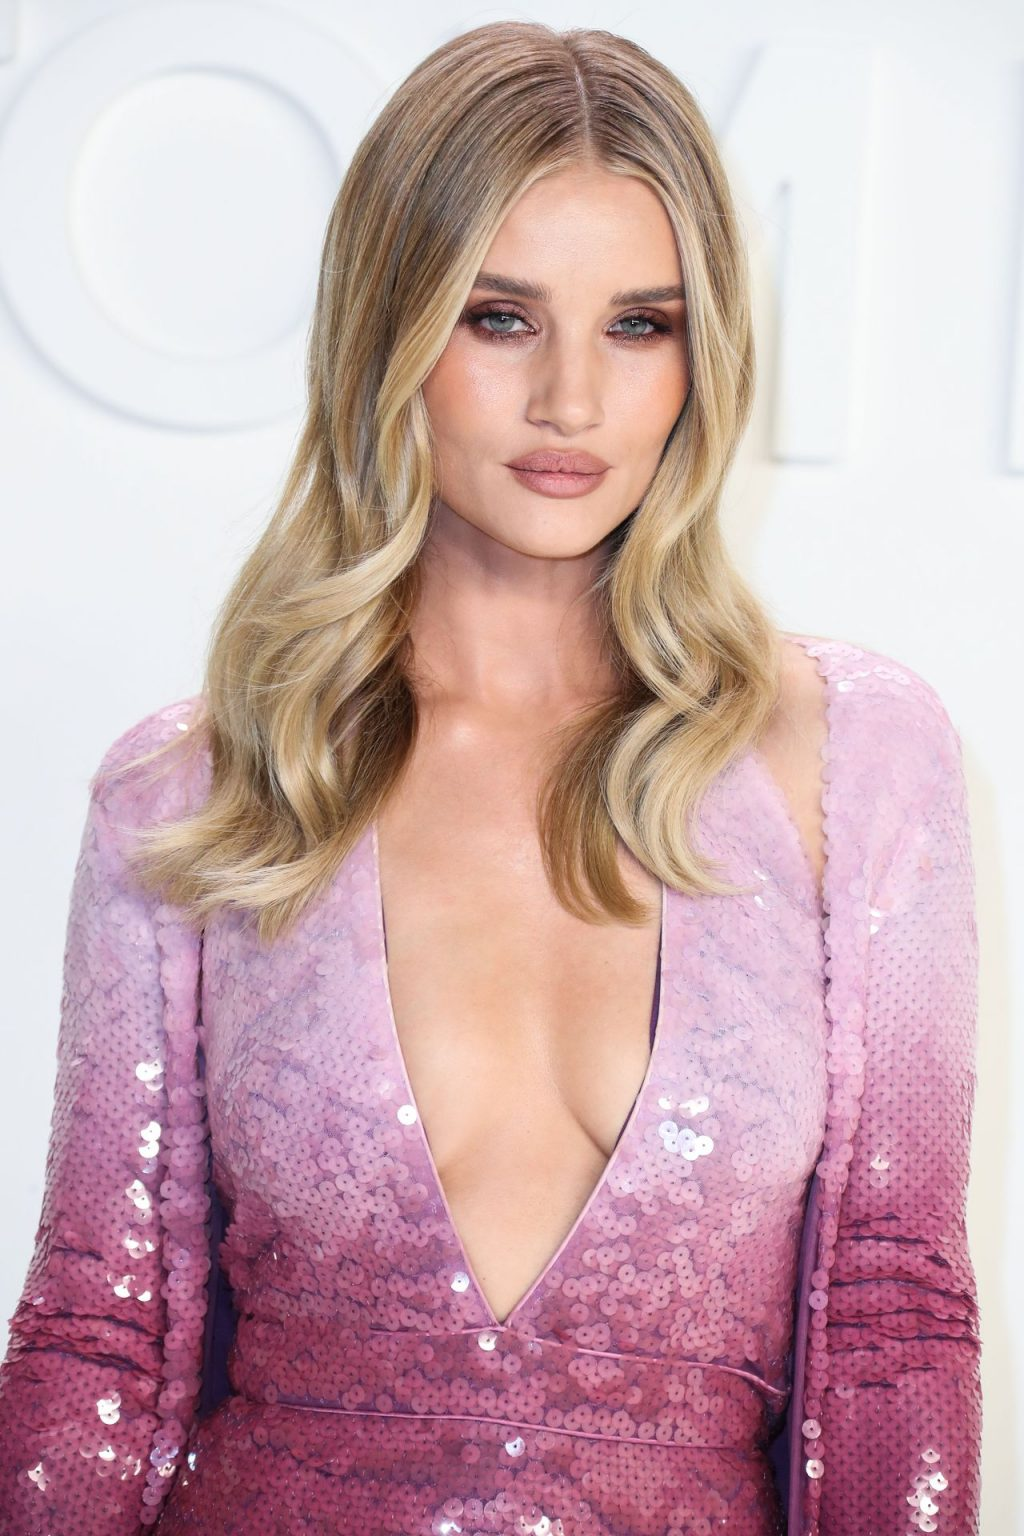 Rosie Huntington Whiteley Sexy The Fappening Blog 65 1024x1536 - Rosie Huntington-Whiteley Shows Her Cleavage at the Tom Ford Fashion Show (115 Photos)